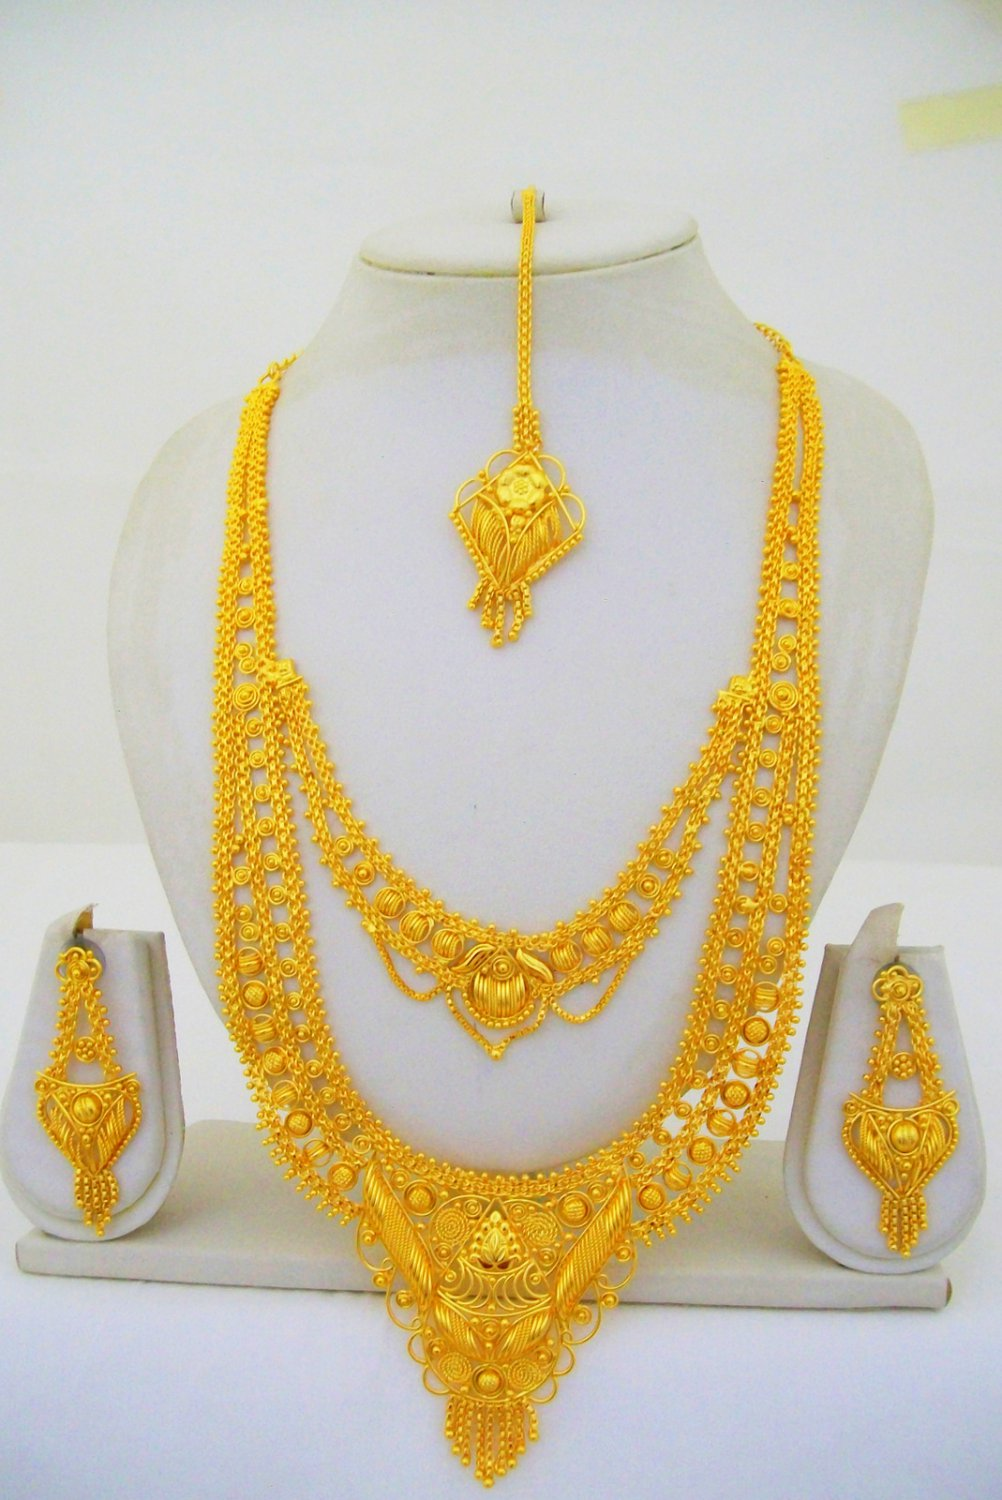 Gold Plated Indian Rani Haar Necklace Long Filigree Layered Designer Jewelry Set